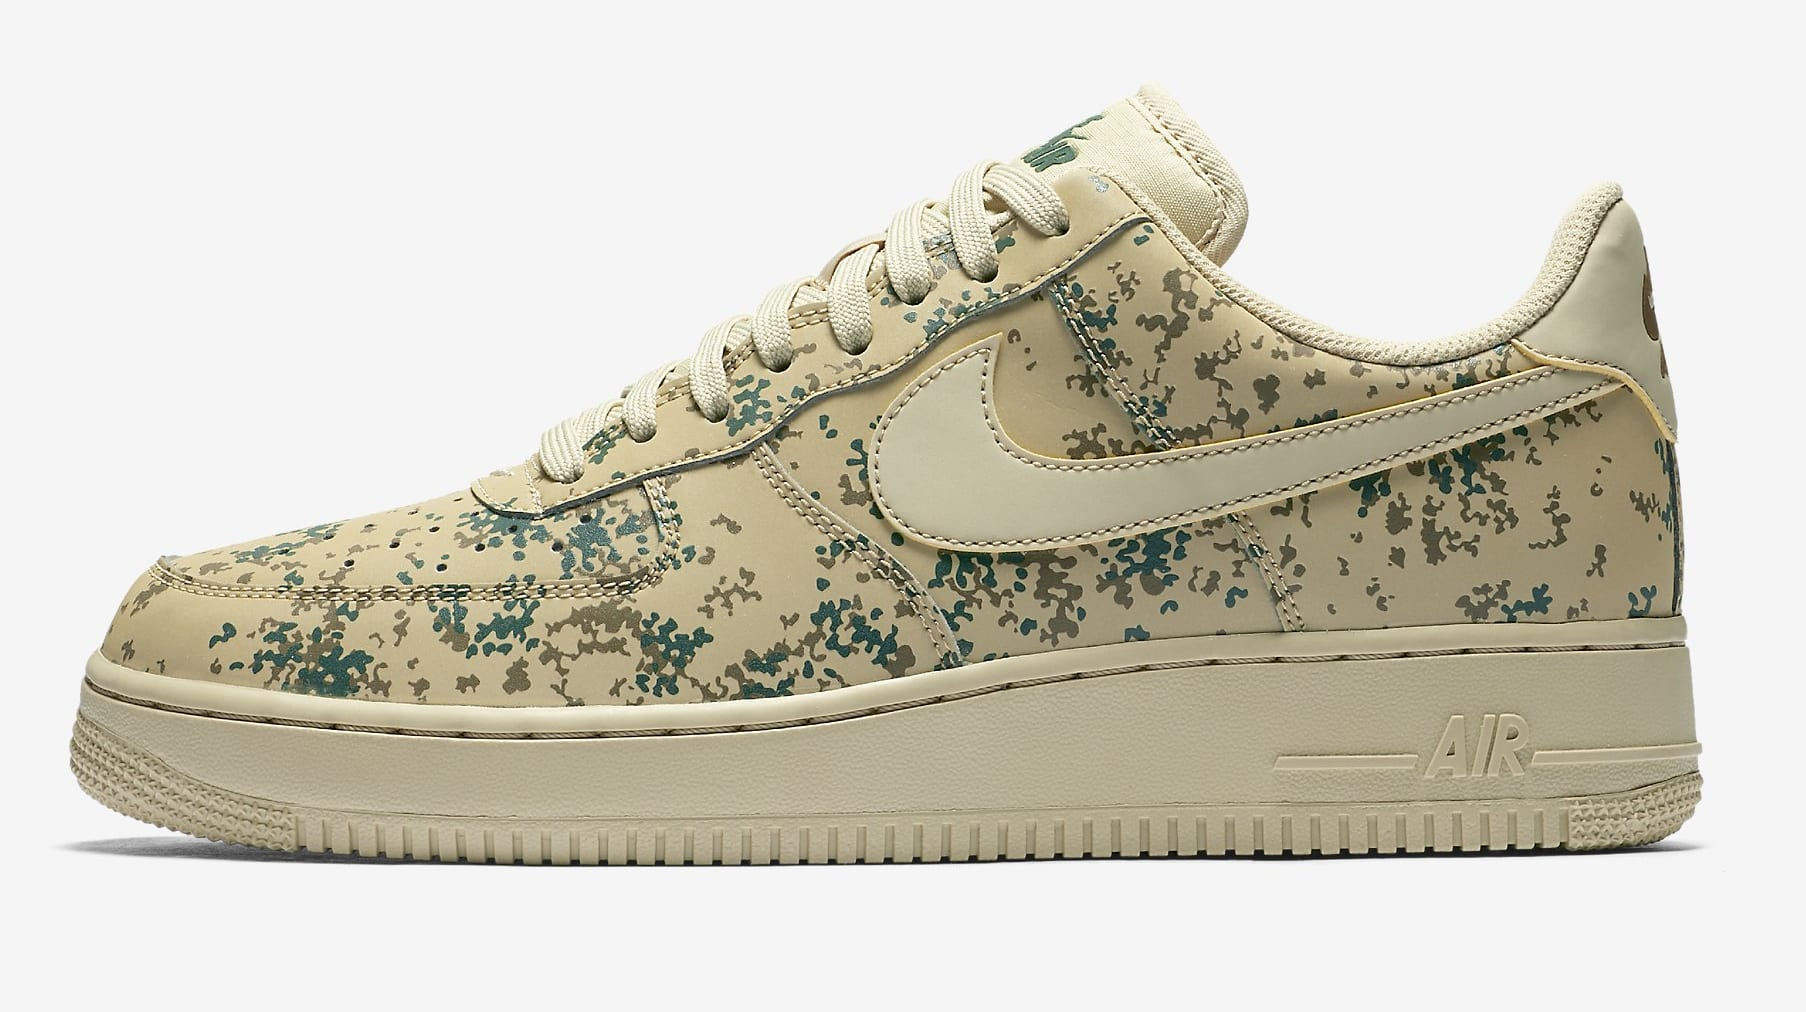 Nike Air Force 1 Low 'Country Camo' 823511-700 (Lateral)